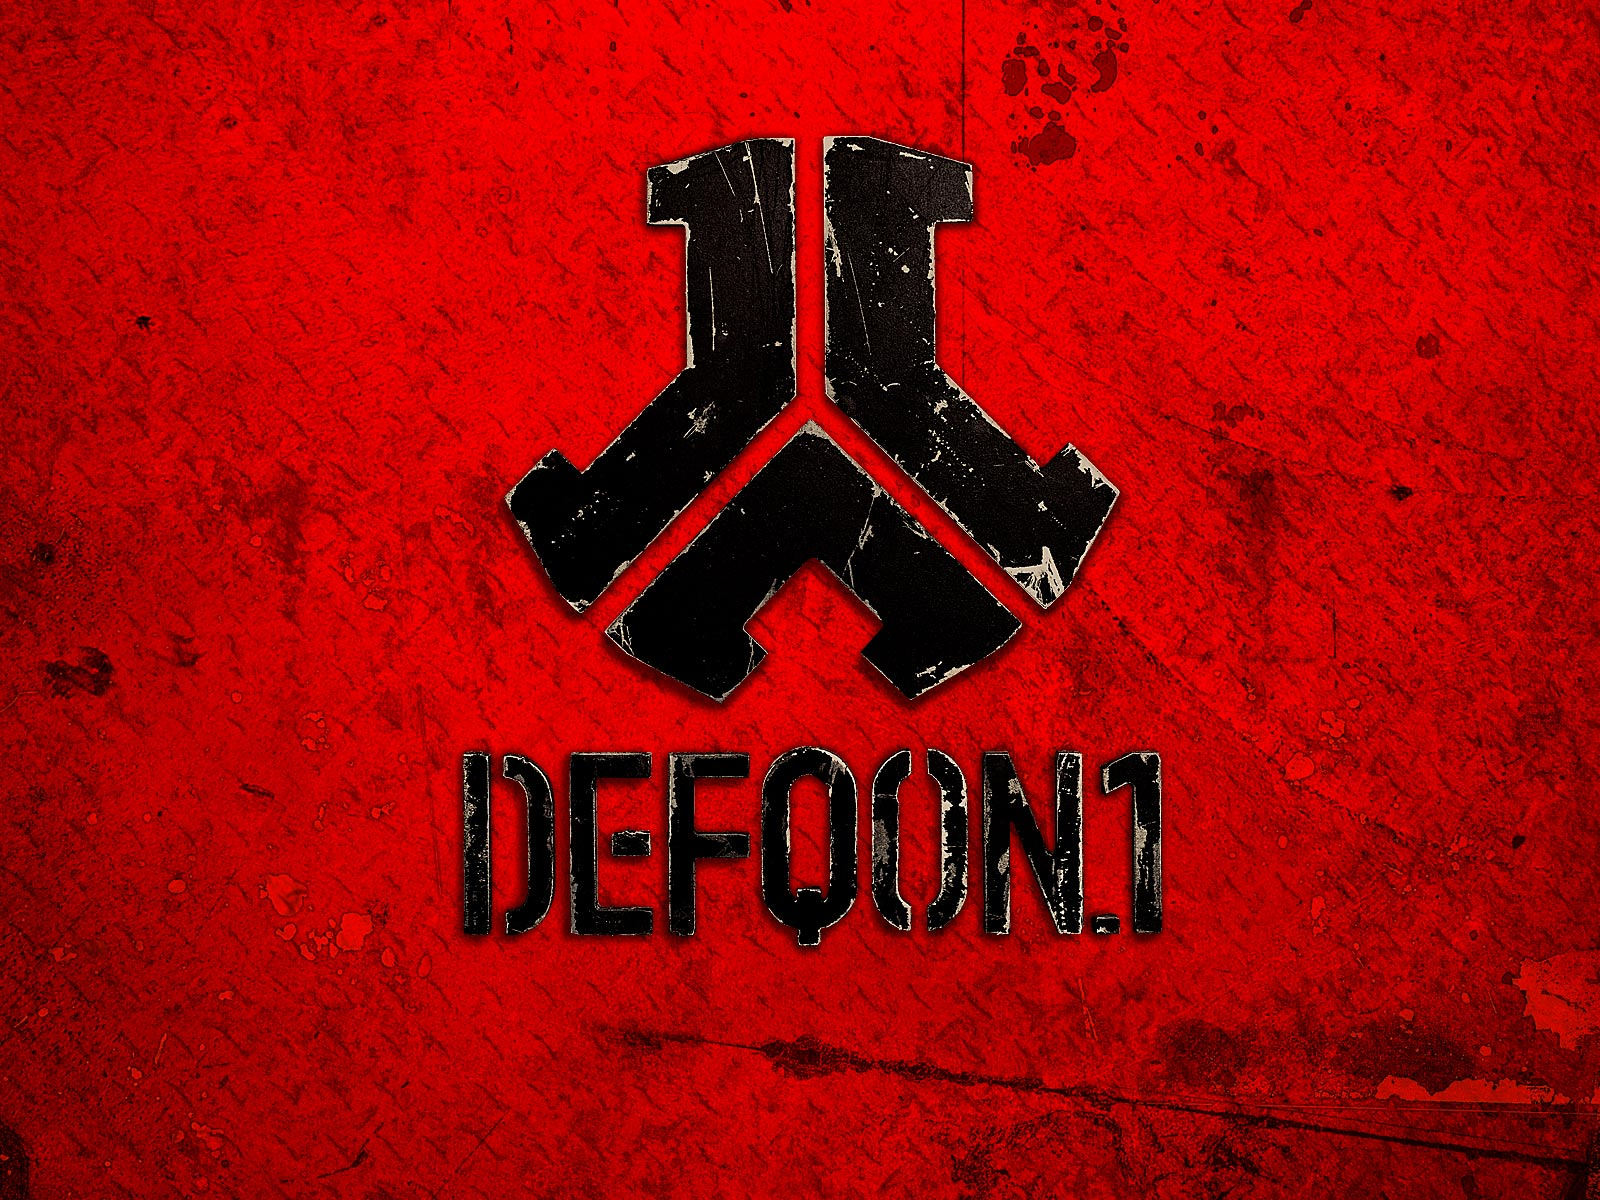 Defcon Computer Wallpapers Desktop Backgrounds 1600x1200 ID77364 1600x1200